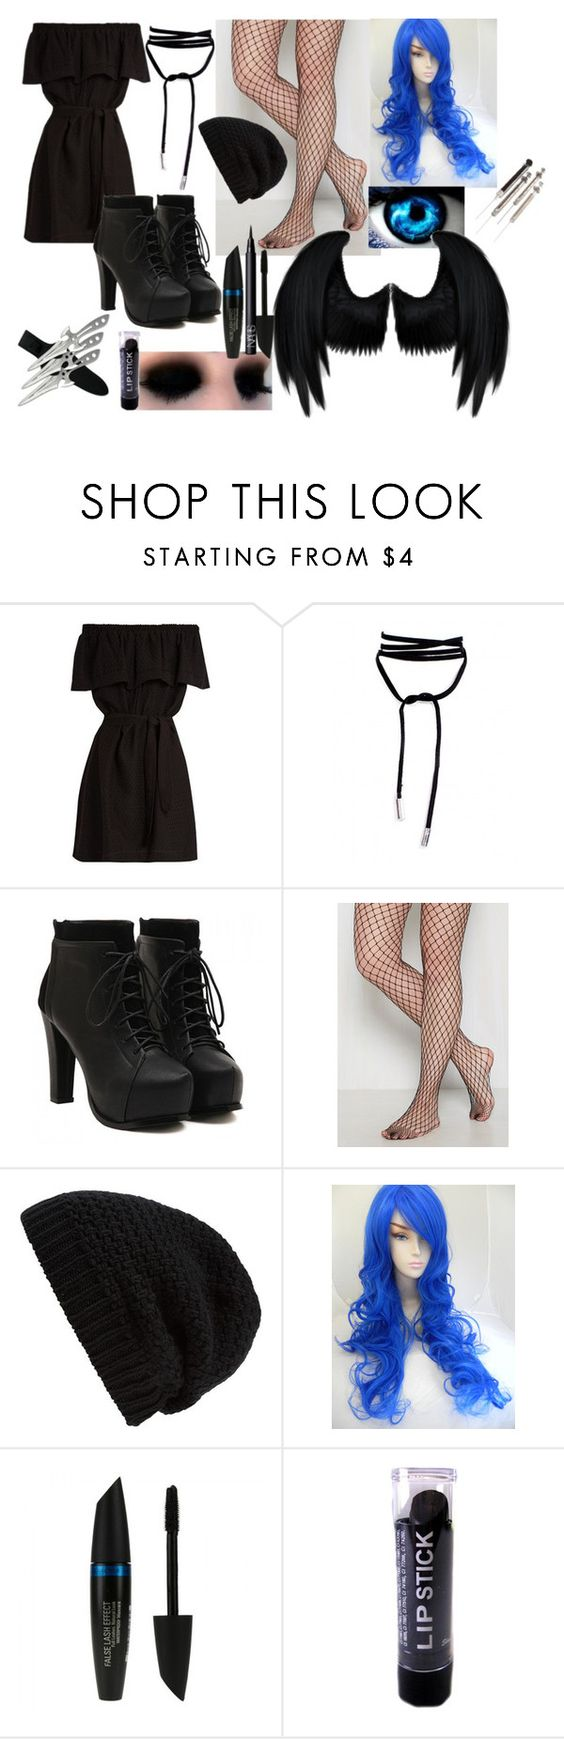 """outfit #29 (eyeless)"" by eyeless-angel-of-death ❤ liked on Polyvore featuring CECILIE Copenhagen, Rick Owens, Dickies, Max Factor and NARS Cosmetics"